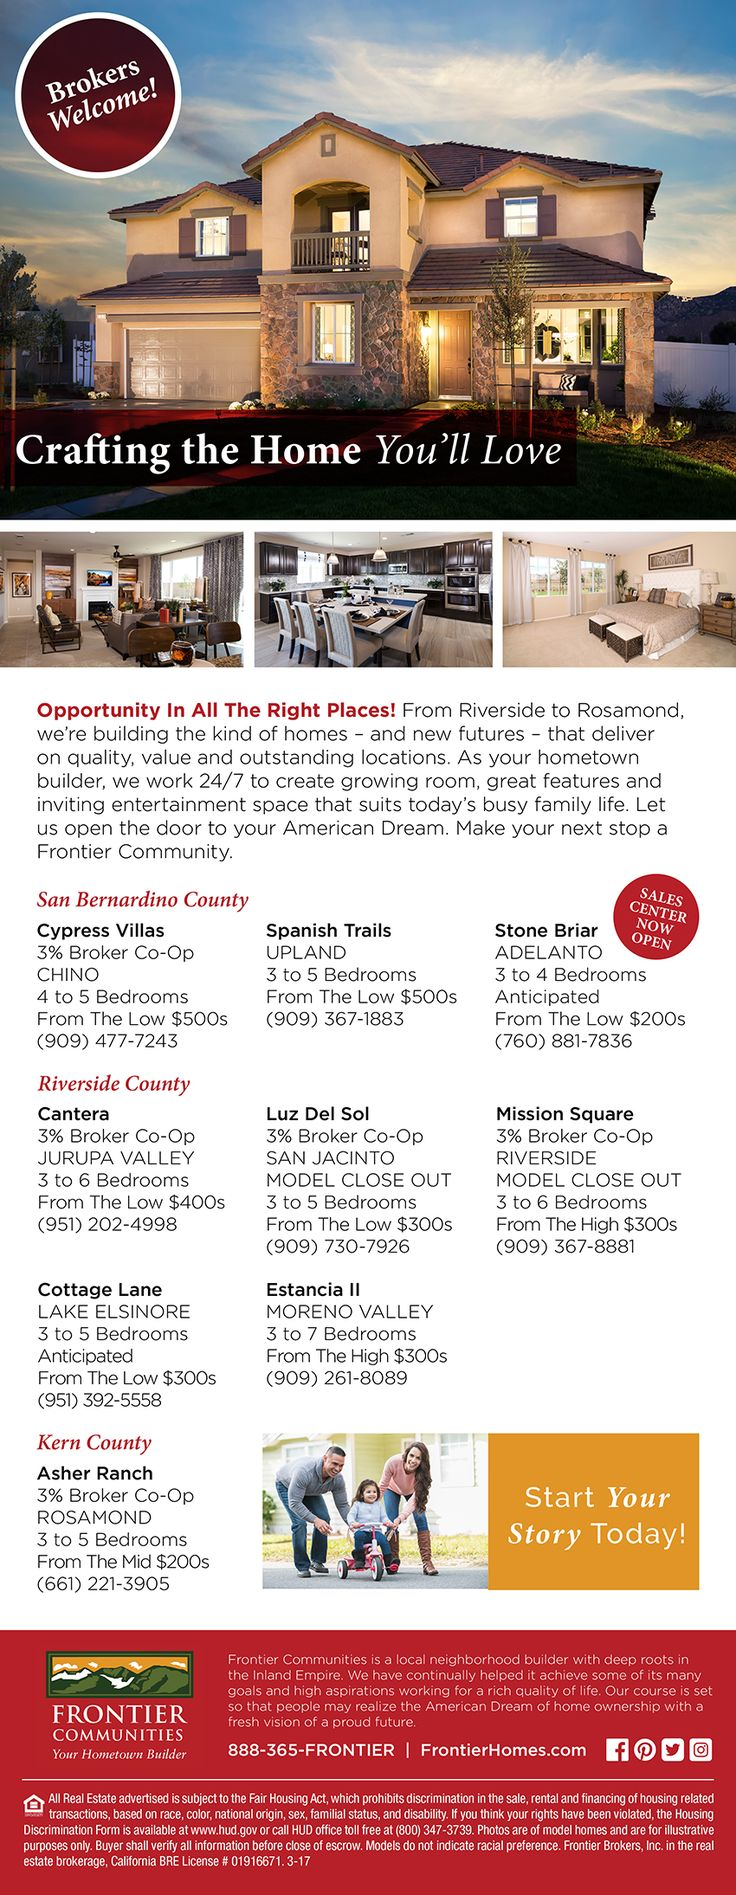 Inland empire model homes